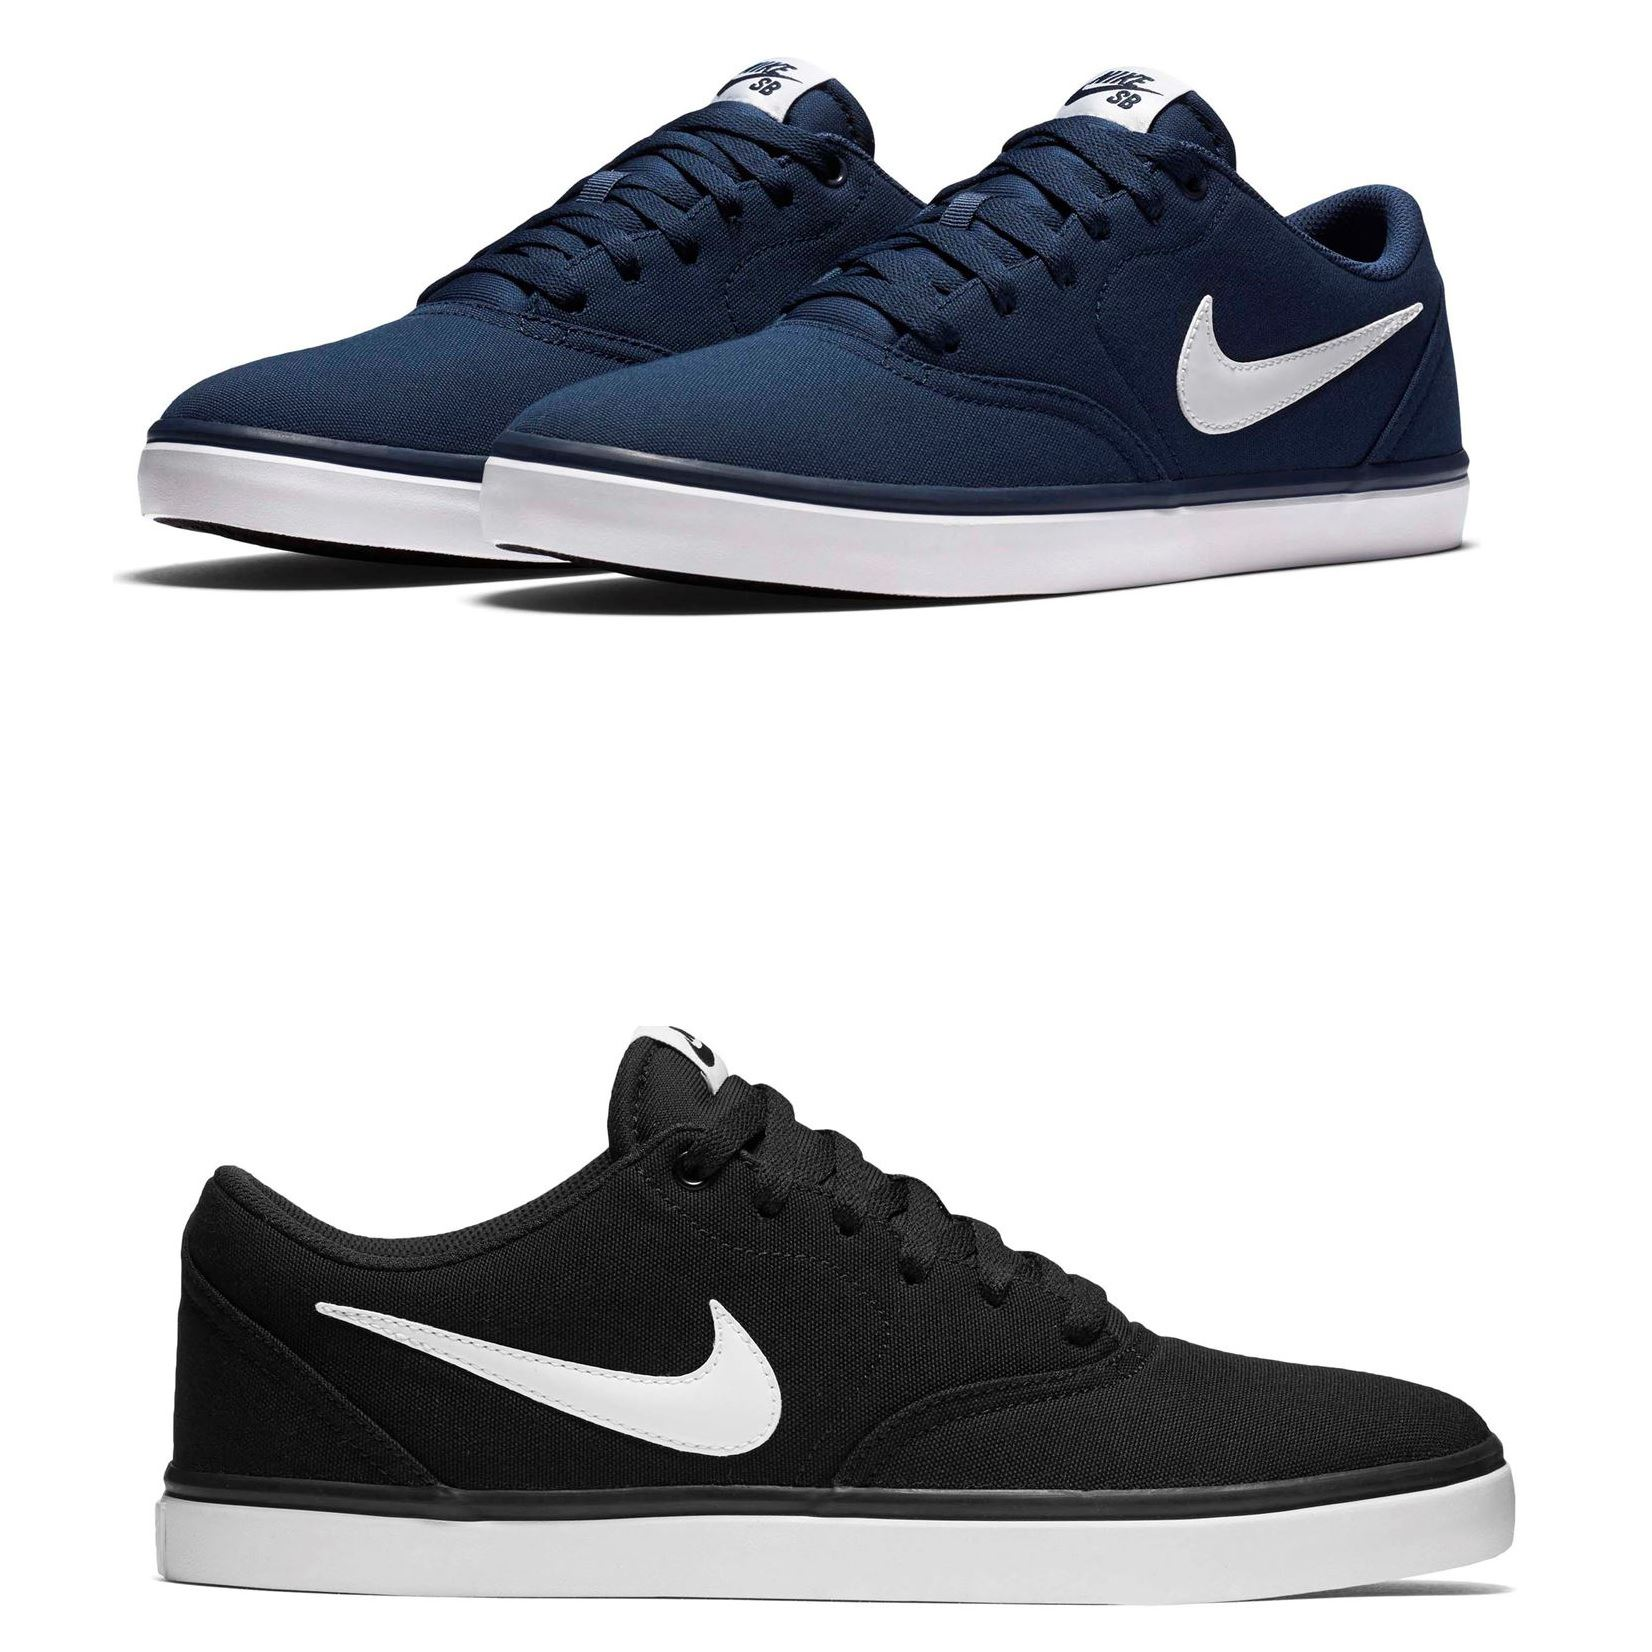 Details about Nike SB Check Canvas Mens Skate Shoes Skateboarding Trainers Footwear